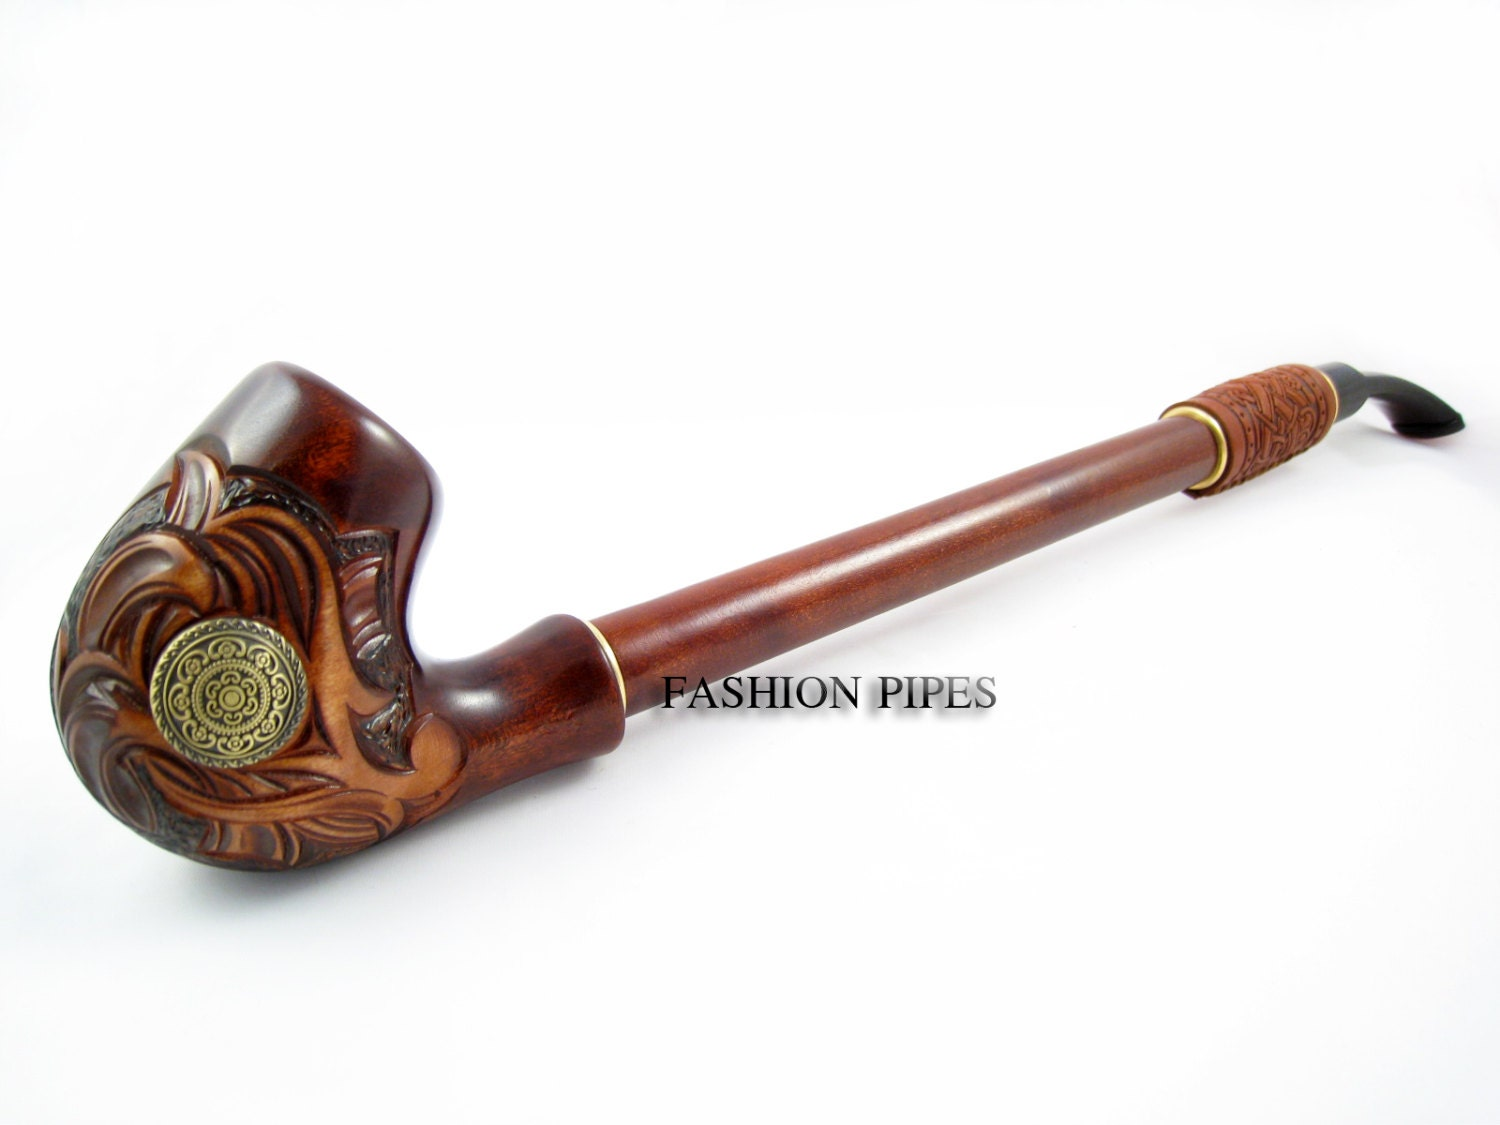 Churchwarden tobacco pipe nordic wooden smoking for What are old plumbing pipes made of